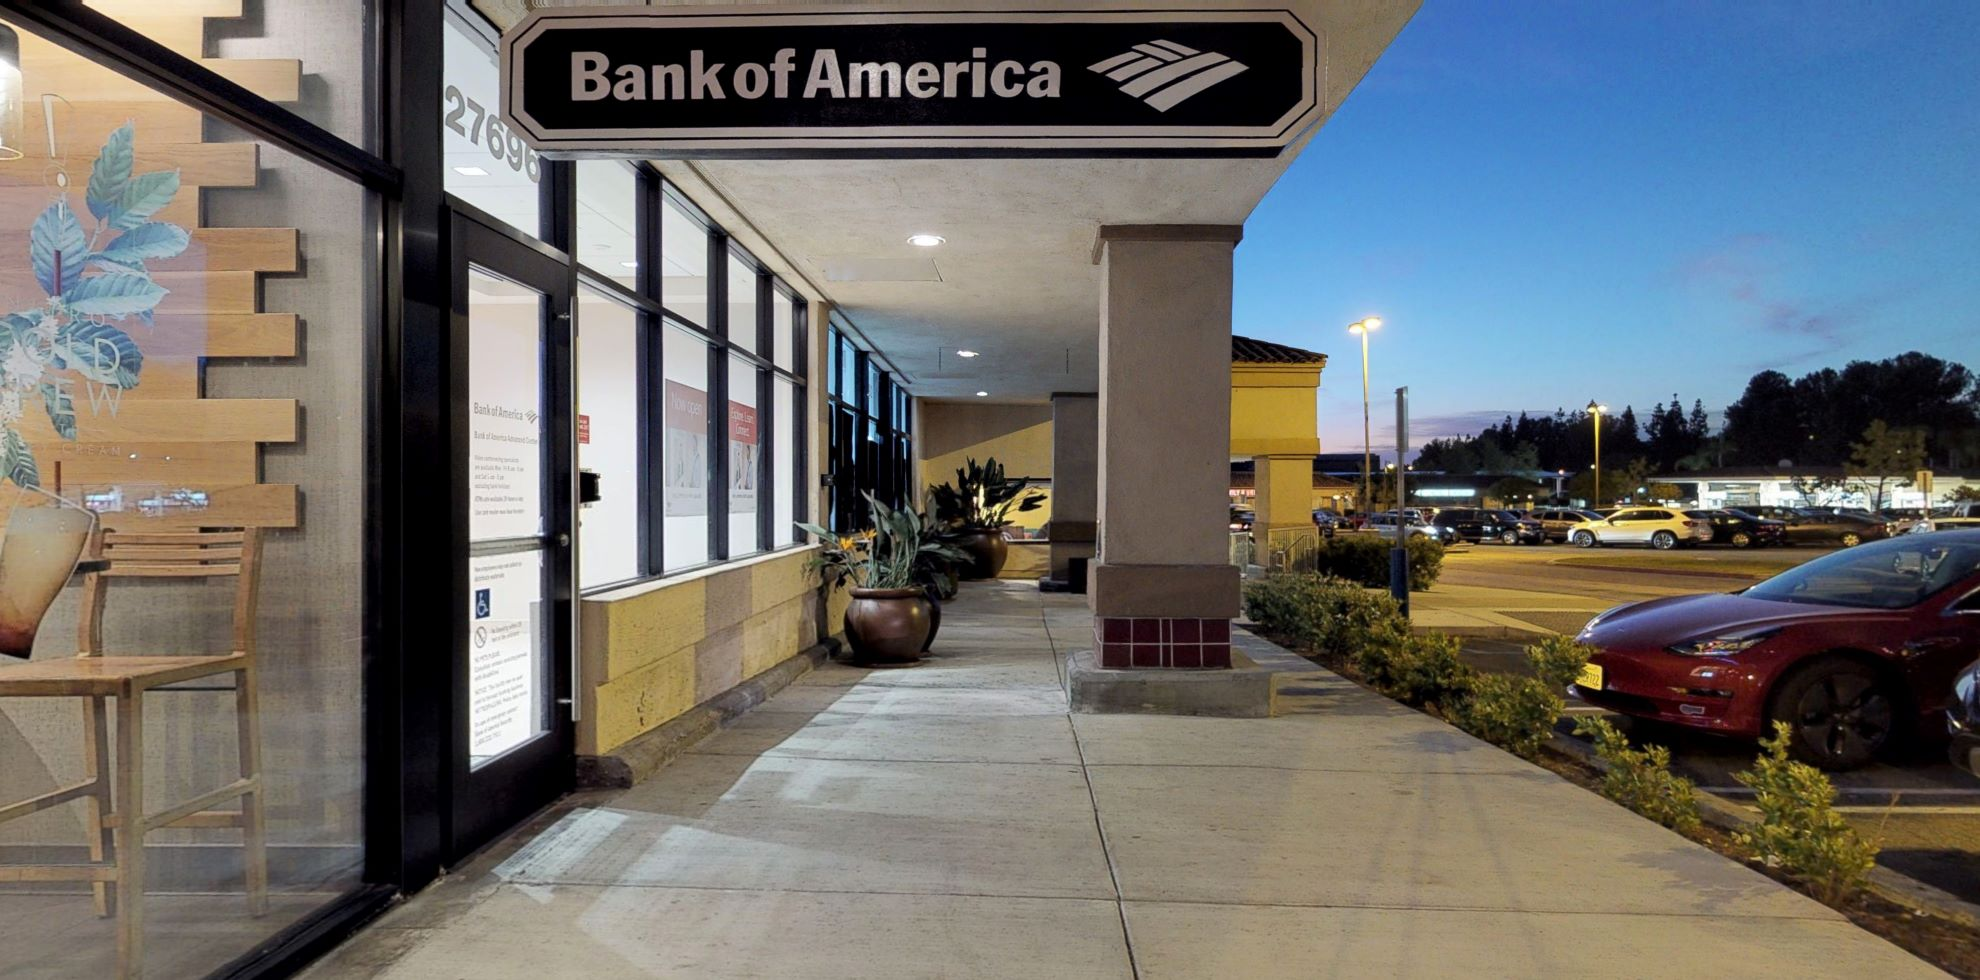 Bank of America Advanced Center with walk-up ATM | 27696 Santa Margarita Pkwy, Mission Viejo, CA 92691